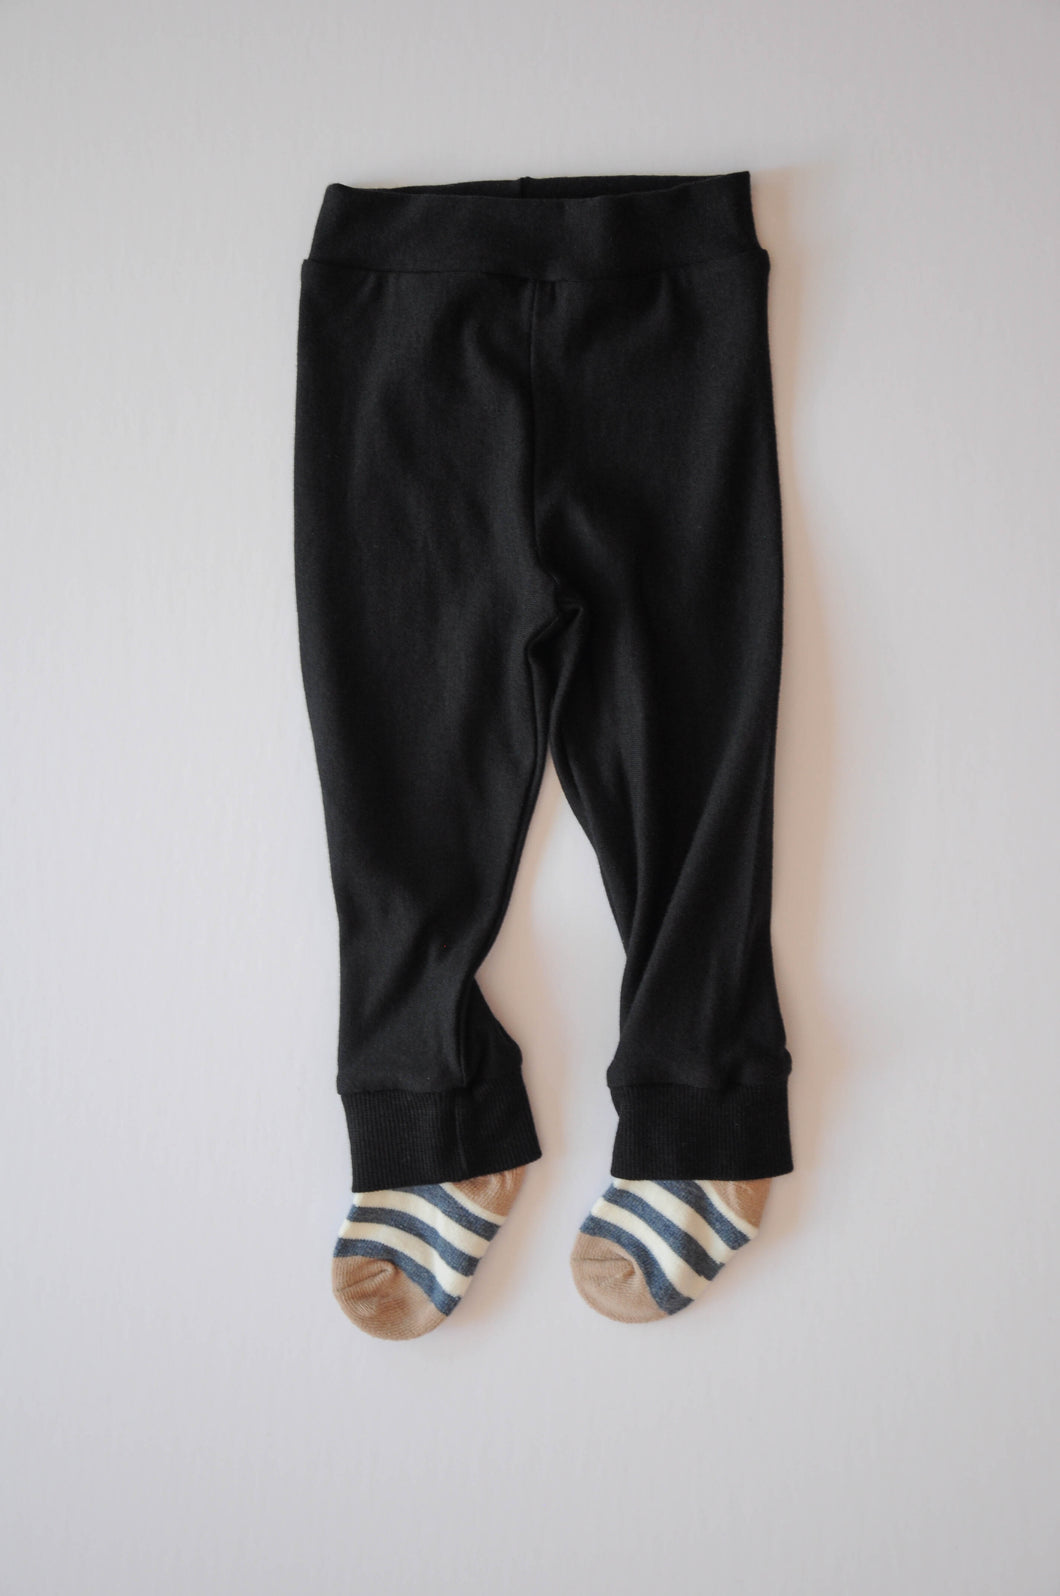 Classic Black Leggings with Blue Thick Stripe Socks